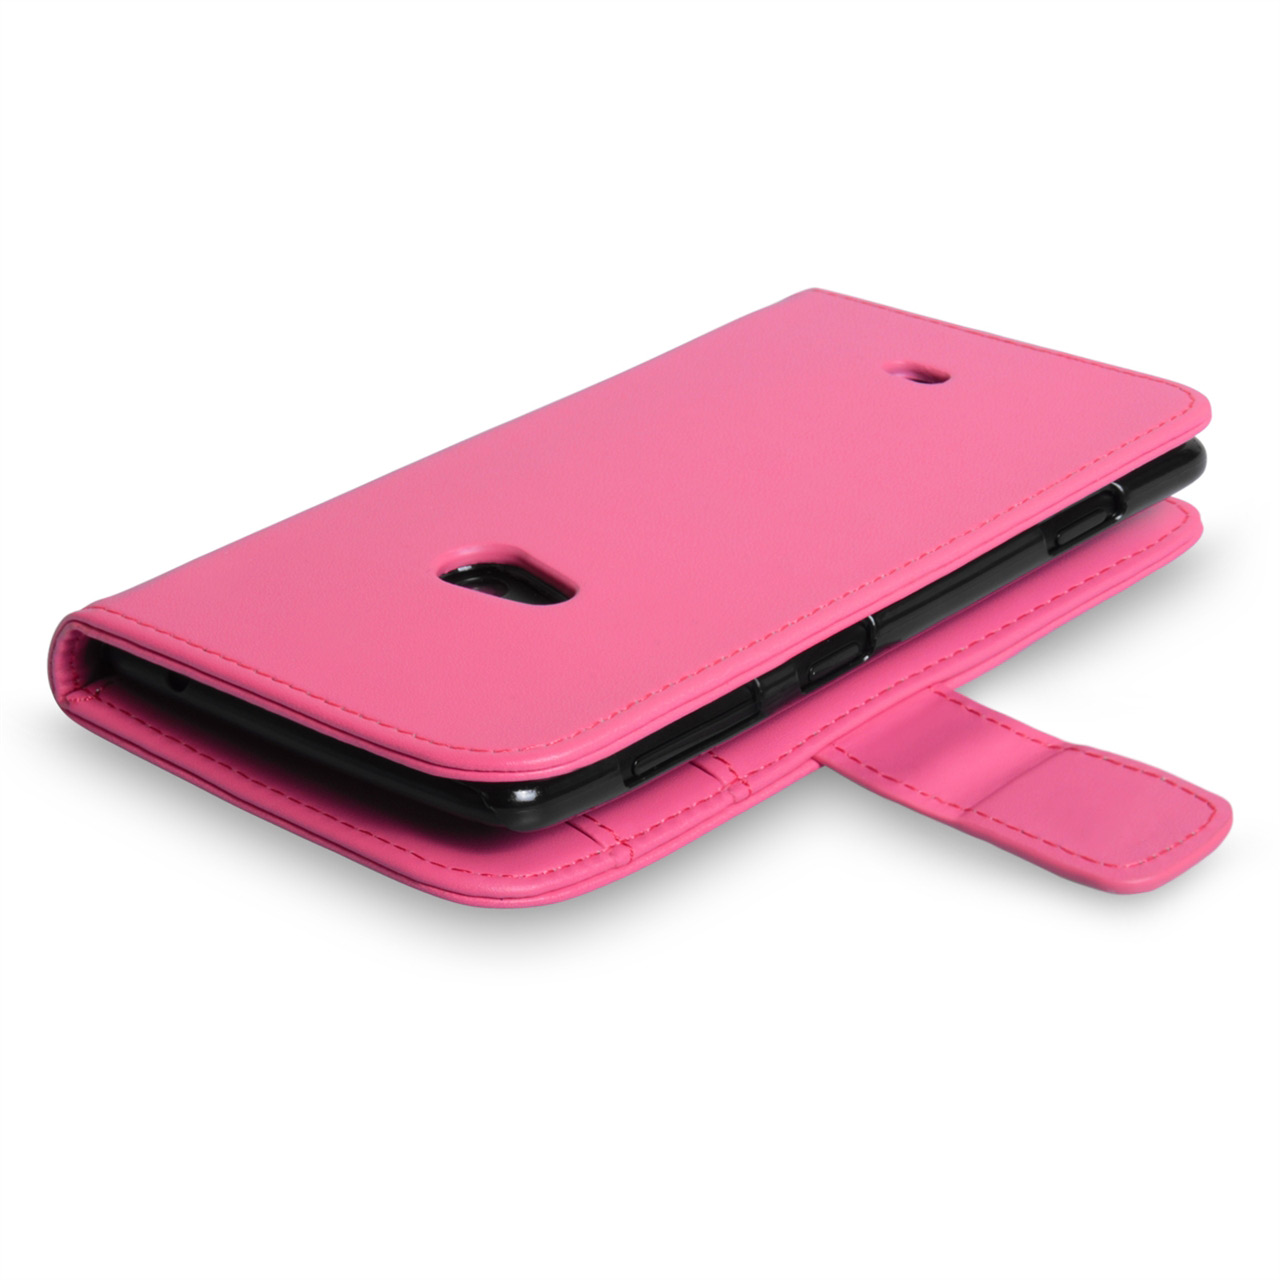 YouSave Nokia Lumia 625 Leather Effect Wallet Case - Baby Pink